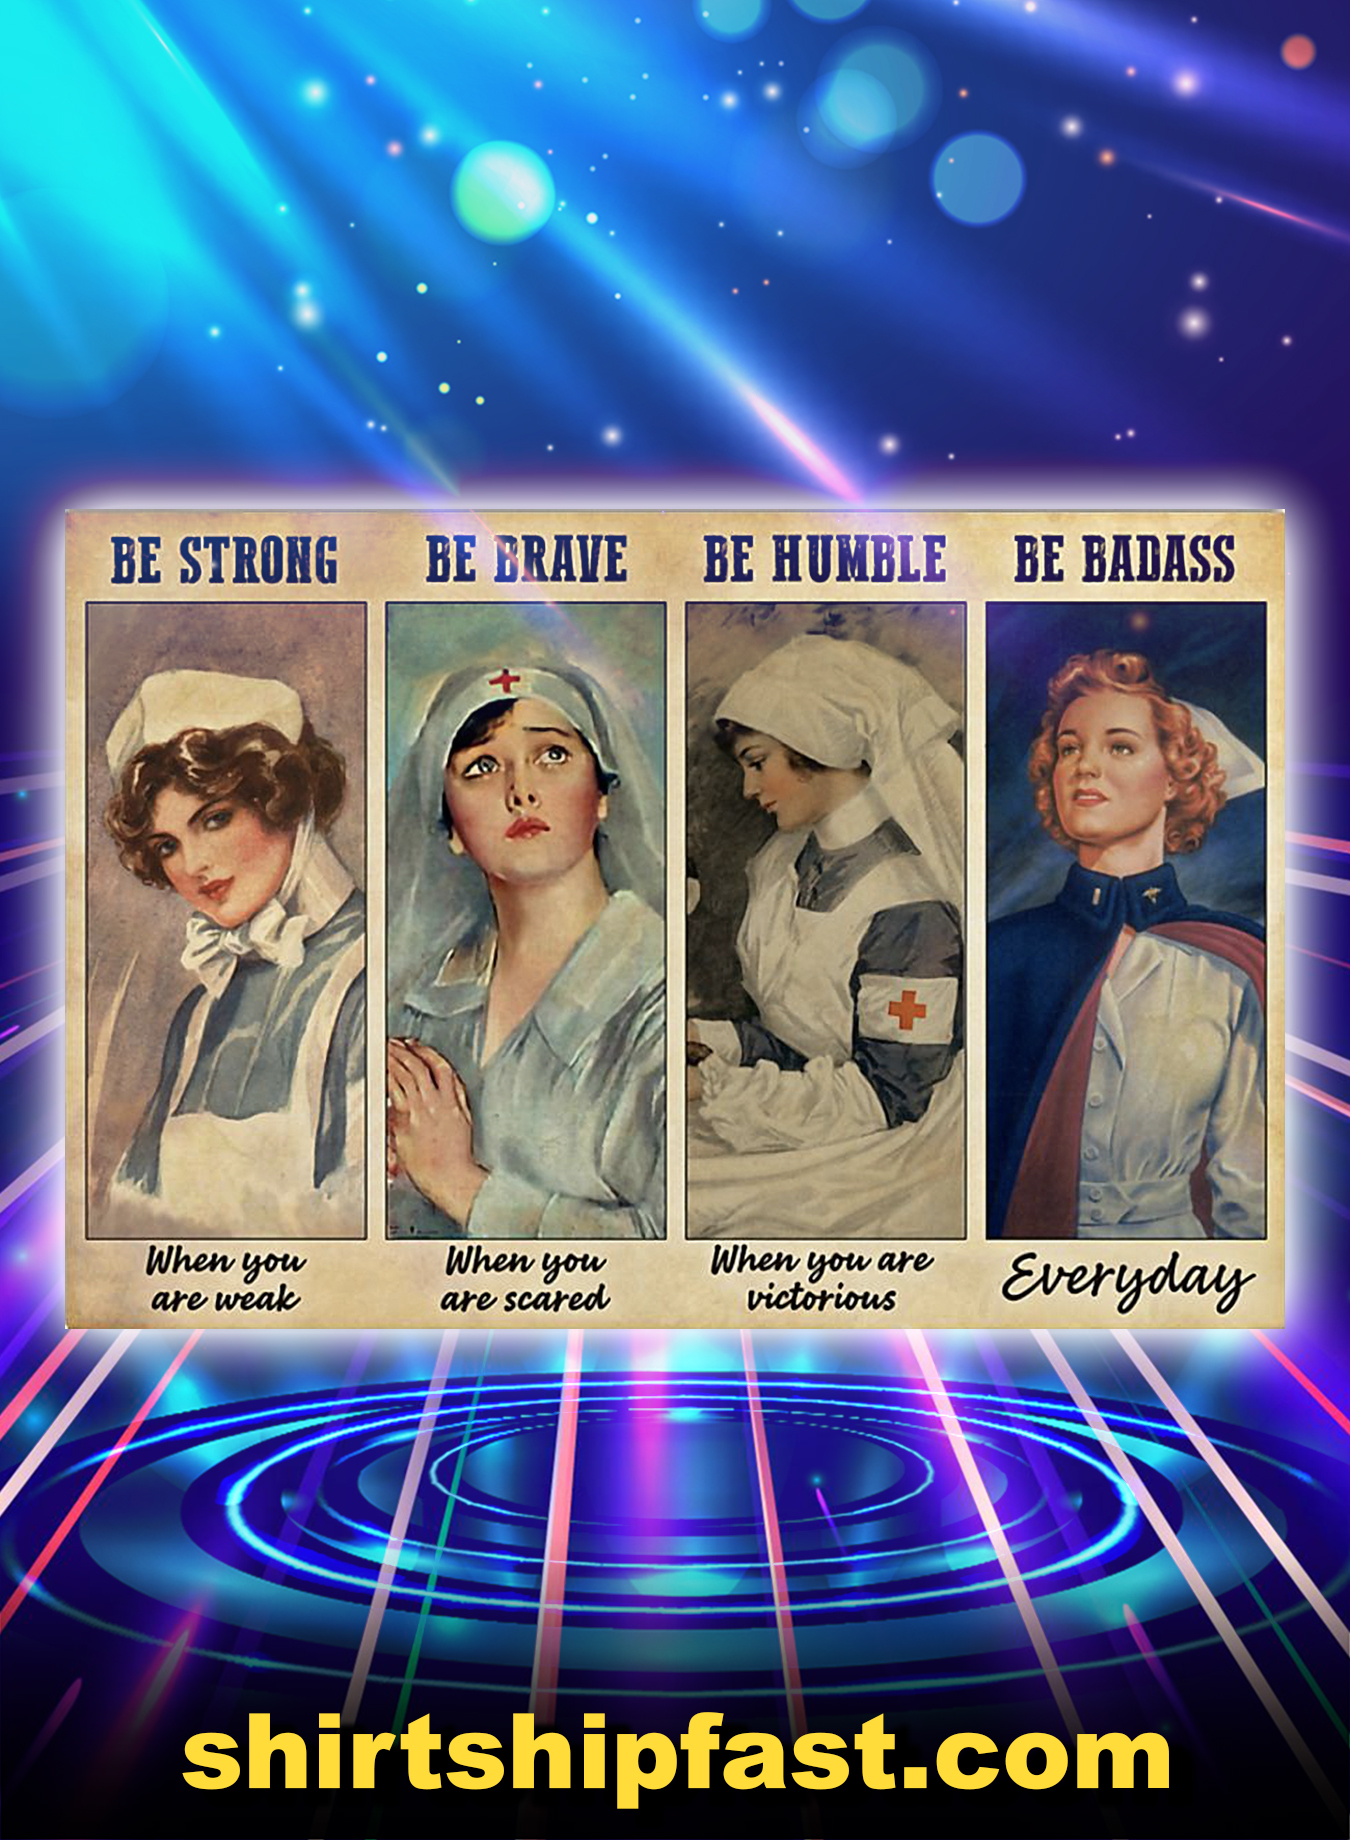 Nurse be strong be brave be humble be badass poster - A3